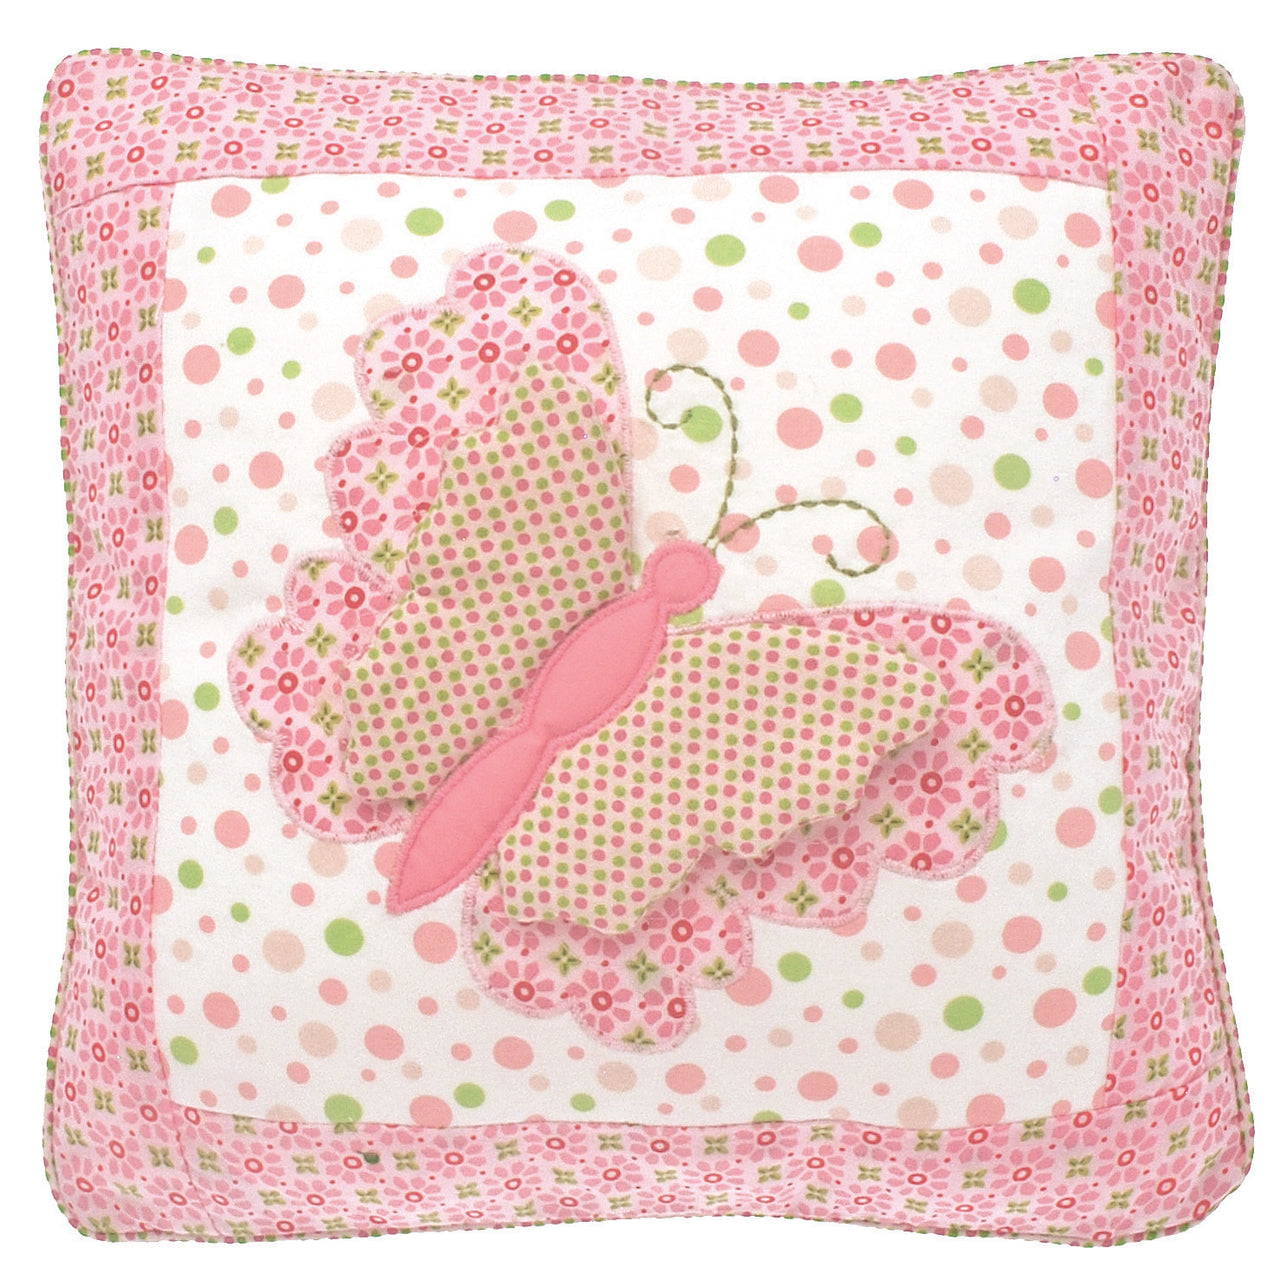 Pretty square cushion with butterfly applique in vintage-inspired pink fabrics. Perfect for a nursery or child's bedroom, 100% cotton removable cover.